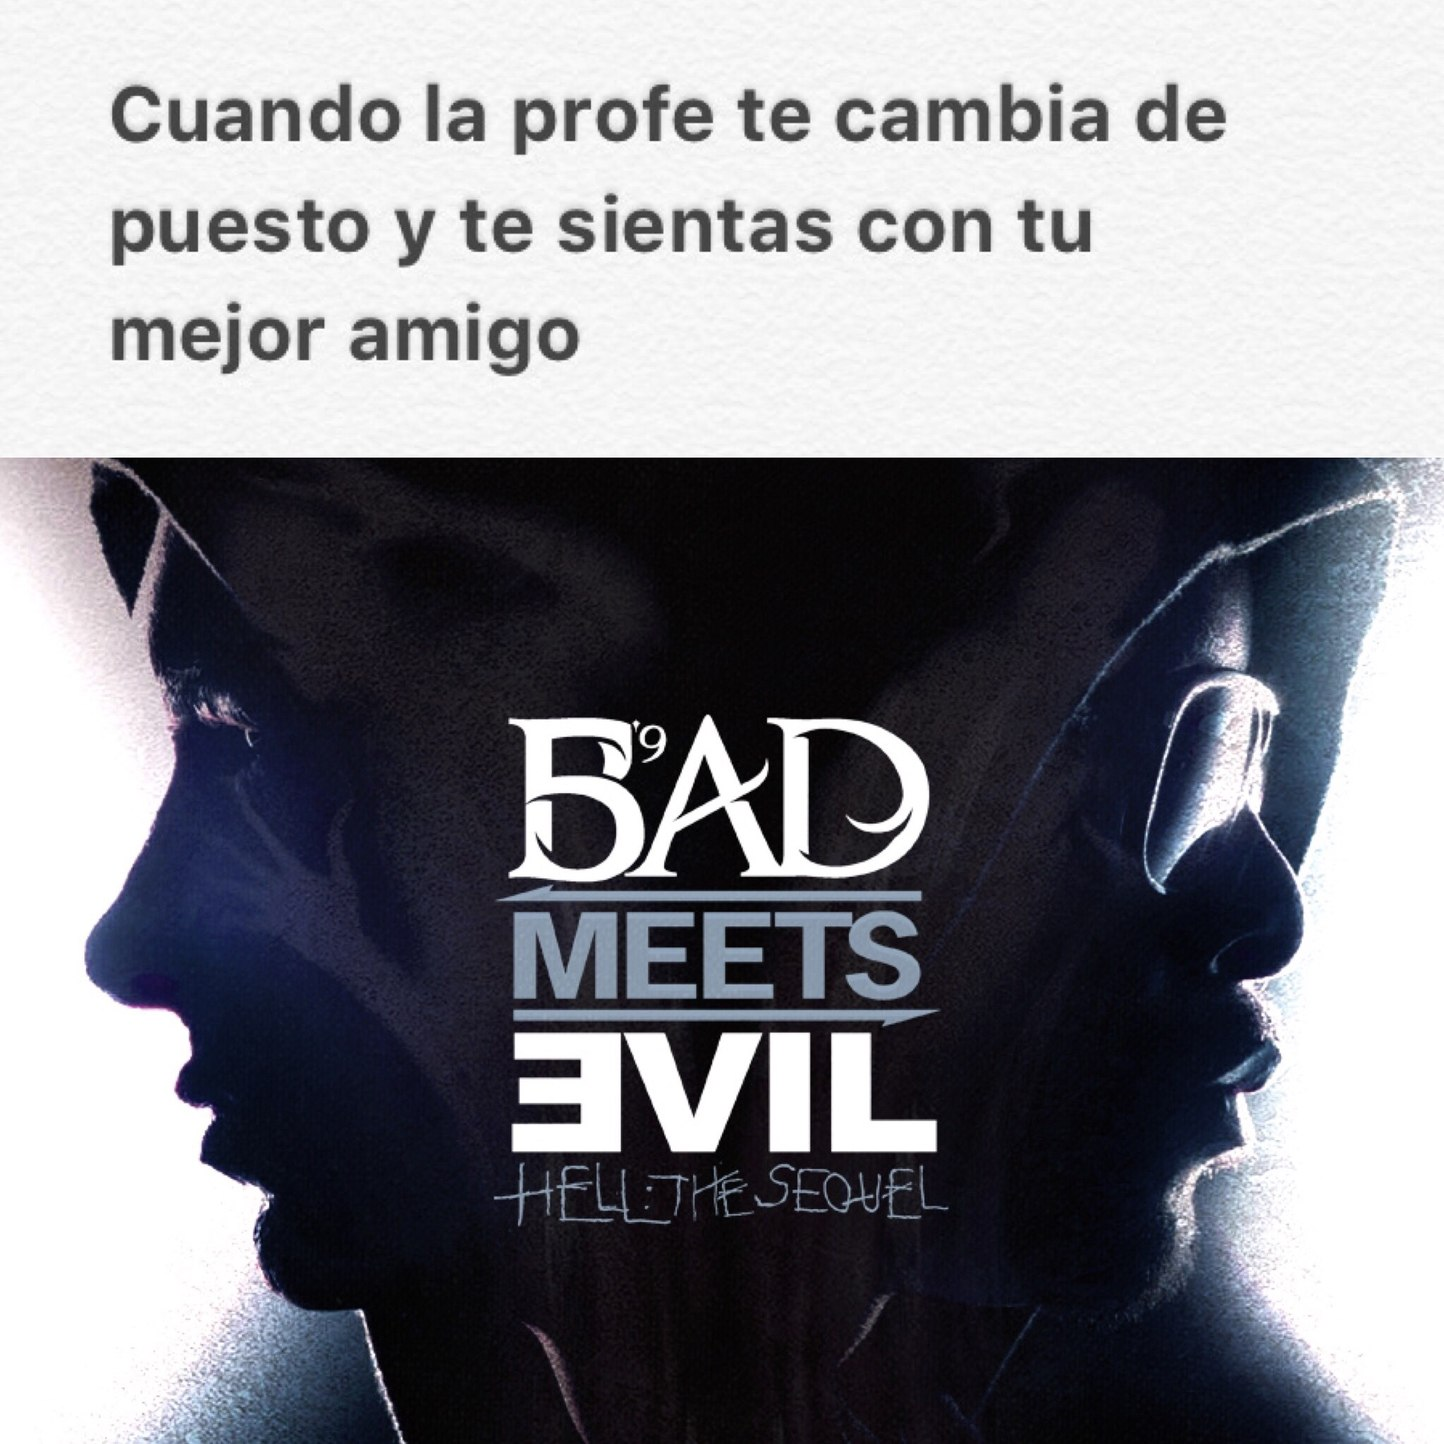 Bad Meets Evil - meme